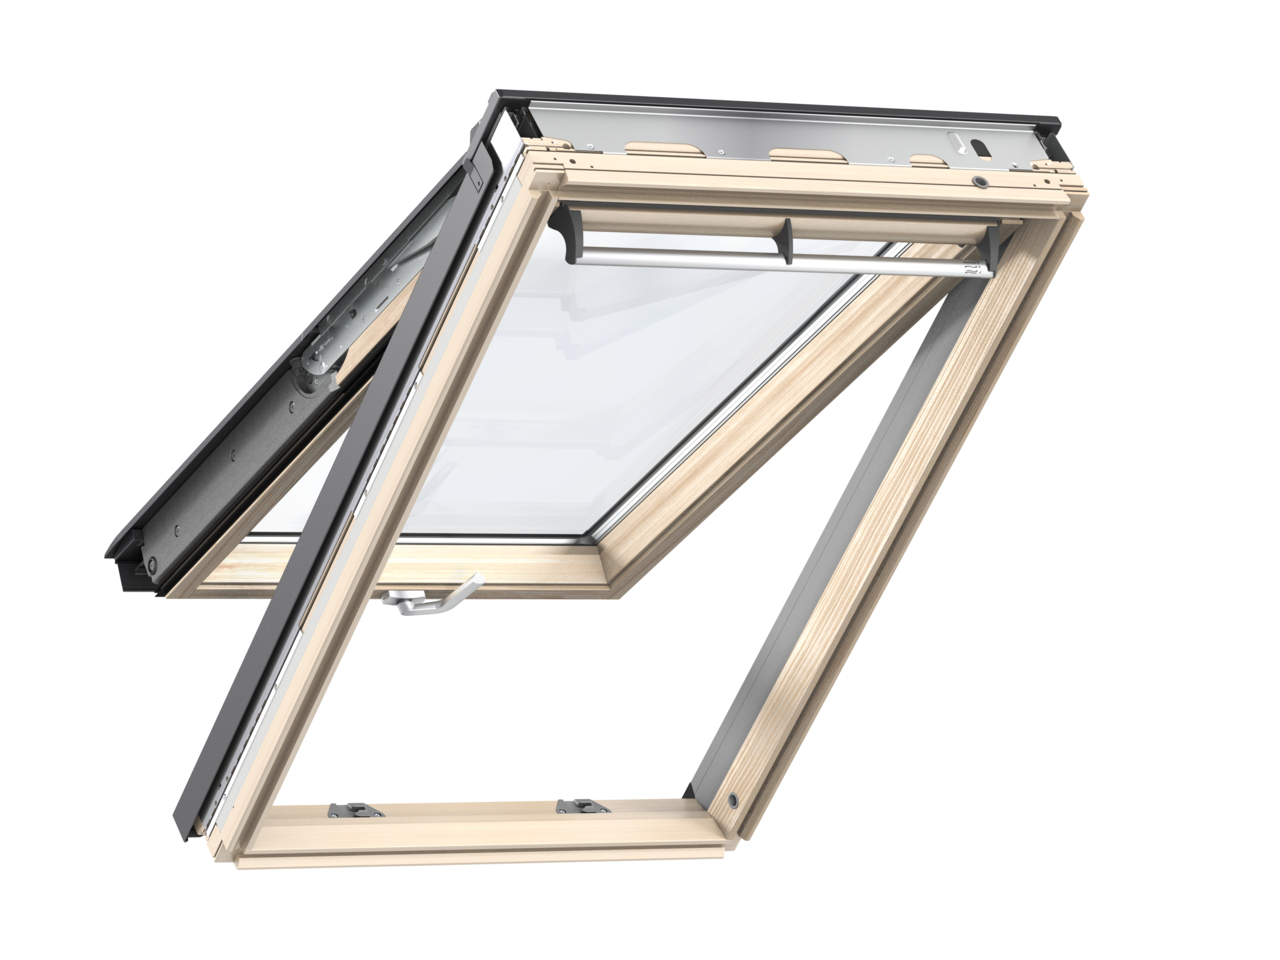 Velux GPL UK08 1340 x 1400mm Top Hung Standard 70Pane Roof Window - Pine